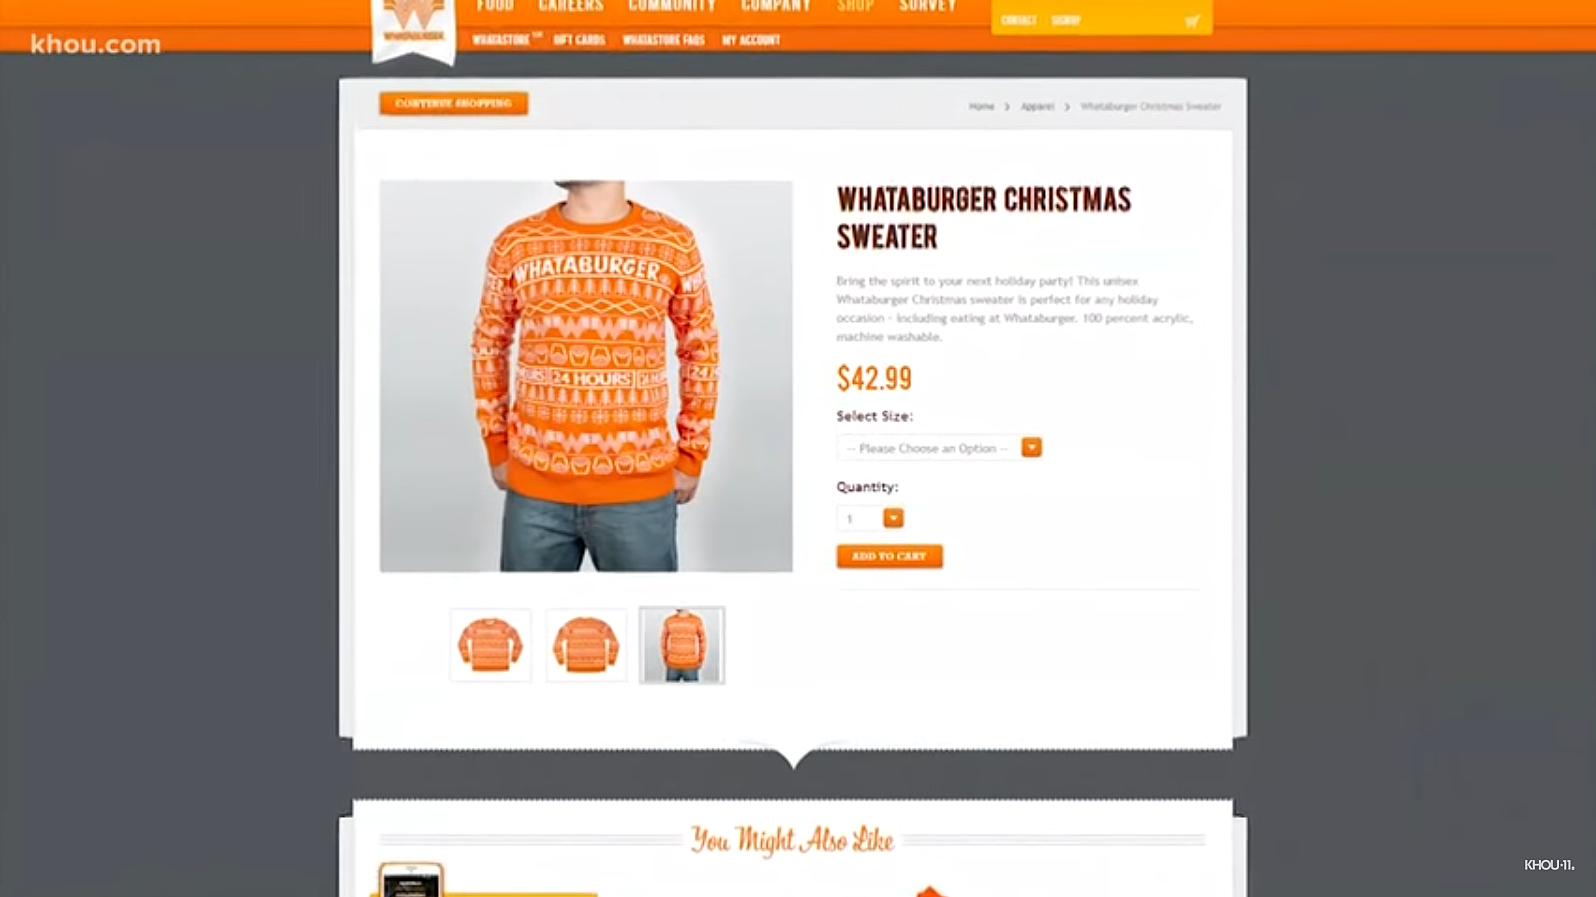 Whataburger Gives Us a Good Looking Ugly Christmas Sweater